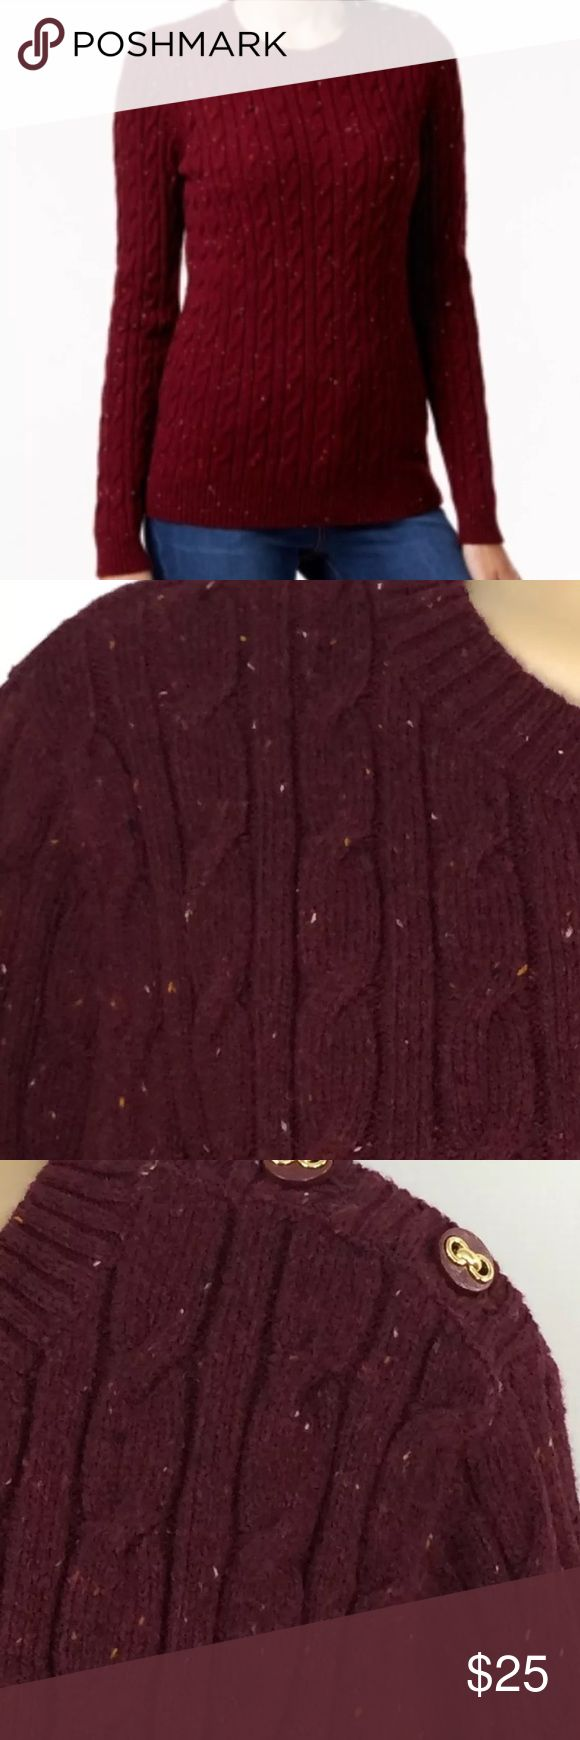 Charter Club Button Detail Speckled Cable Knit XL New With Tag Burgundy Charter Club Button Detail Speckled Cable Knit Sweater XL 54% cotton 20% nylon 18% acrylic Charter Club Sweaters Crew & Scoop Necks